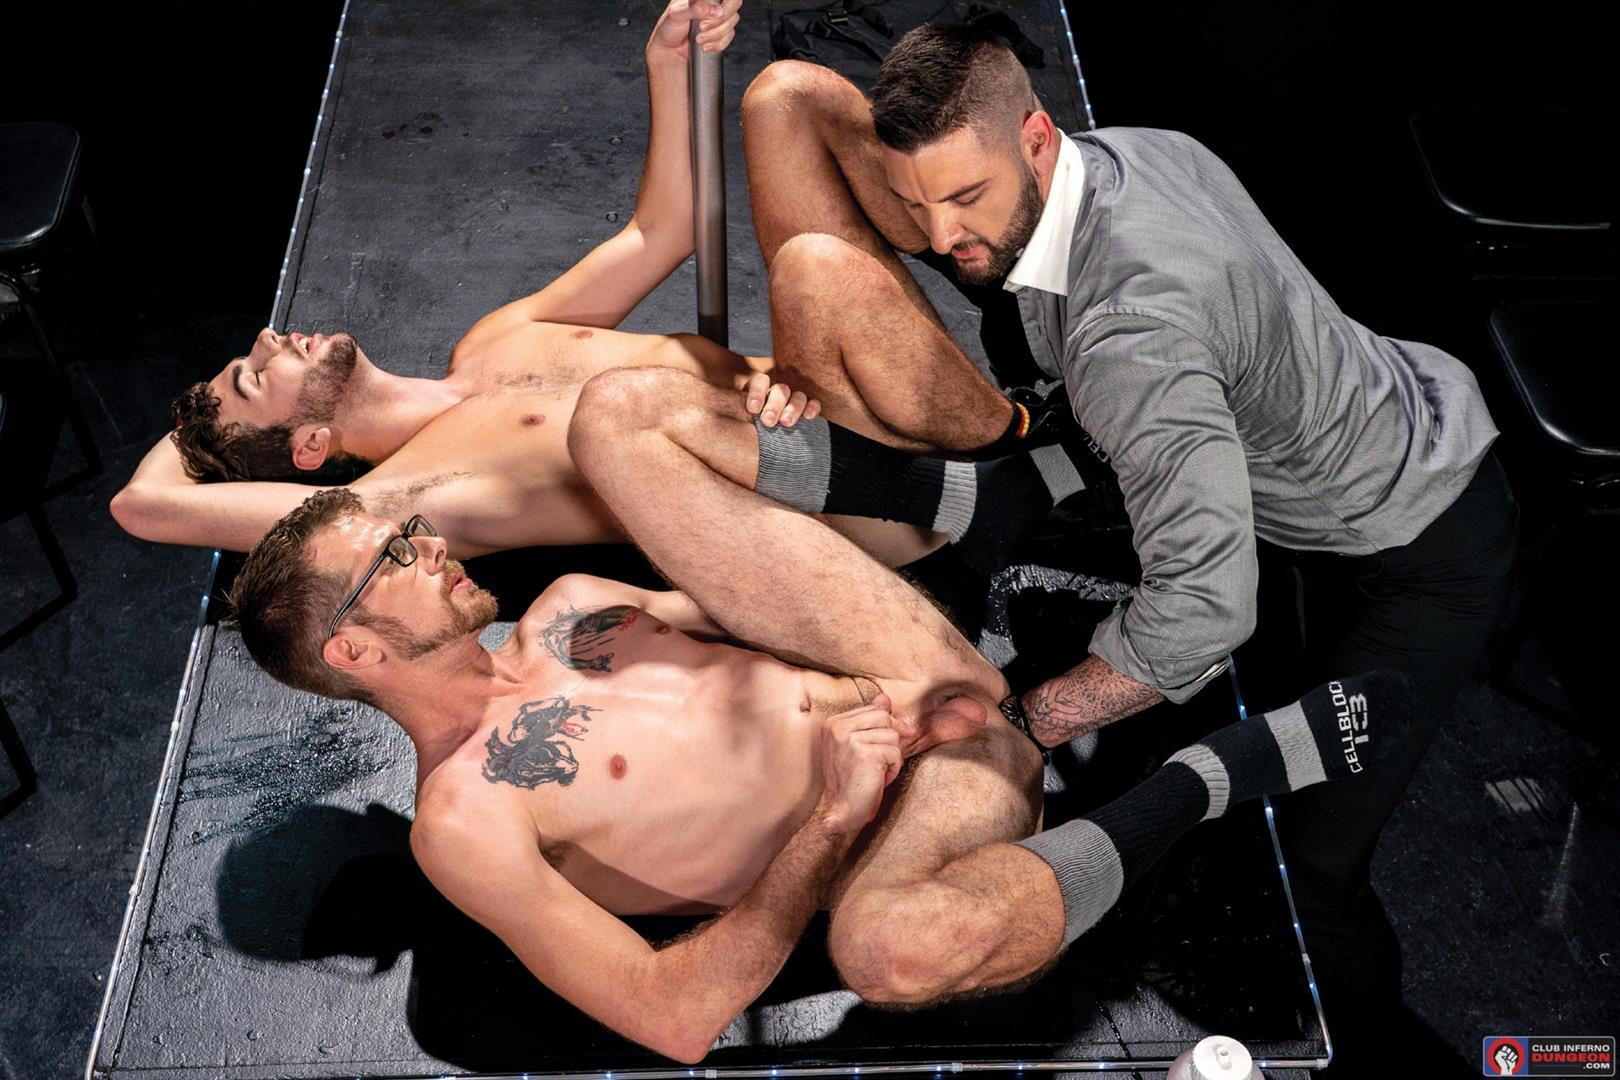 Club-Inferno-Dungeon-Teddy-Bryce-and-Noah-Scott-and-Alex-Killian-Guys-Getting-Fisted-13 Teddy Bryce Double Fisting Noah Scott and Alex Killian